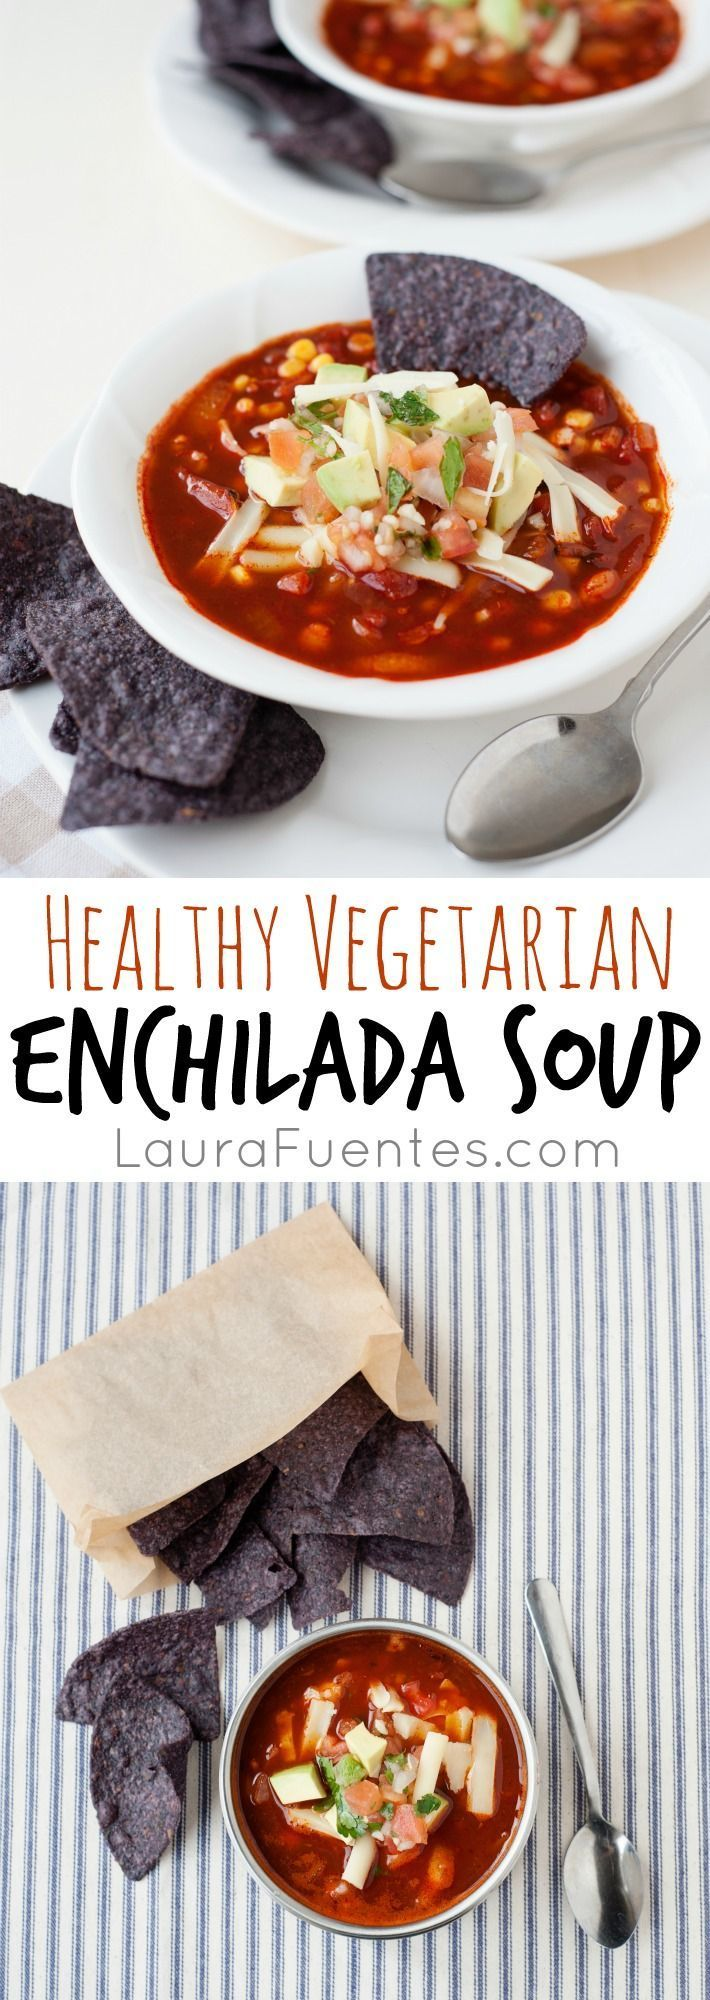 Easy vegetarian enchilada soup that is hearty and filled with rich smoky flavors. This healthy version has minimal calories compared with the traditional Mexican dish!